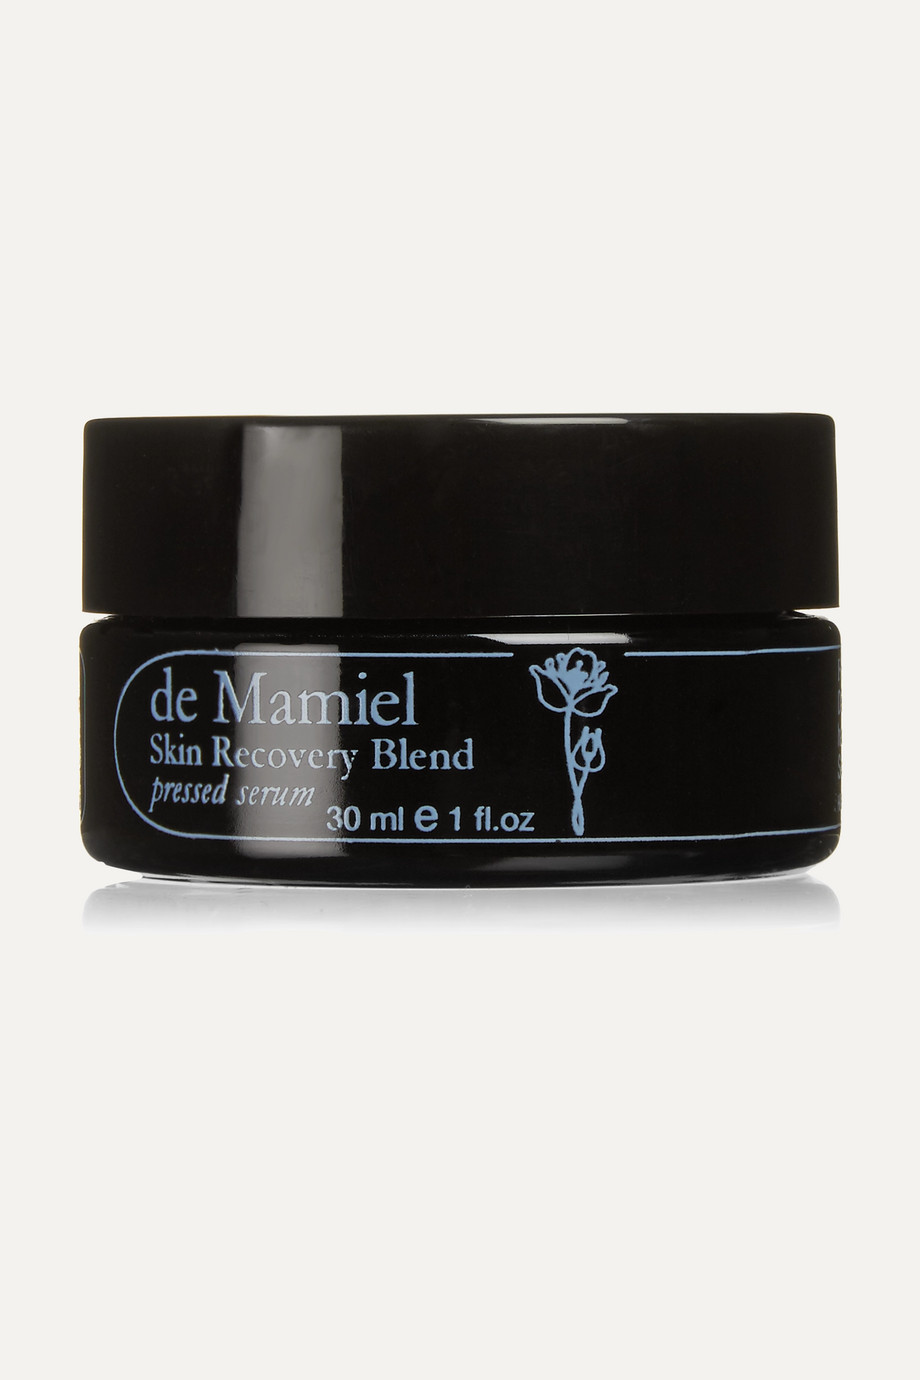 de Mamiel The Skin Recovery Blend, 30ml